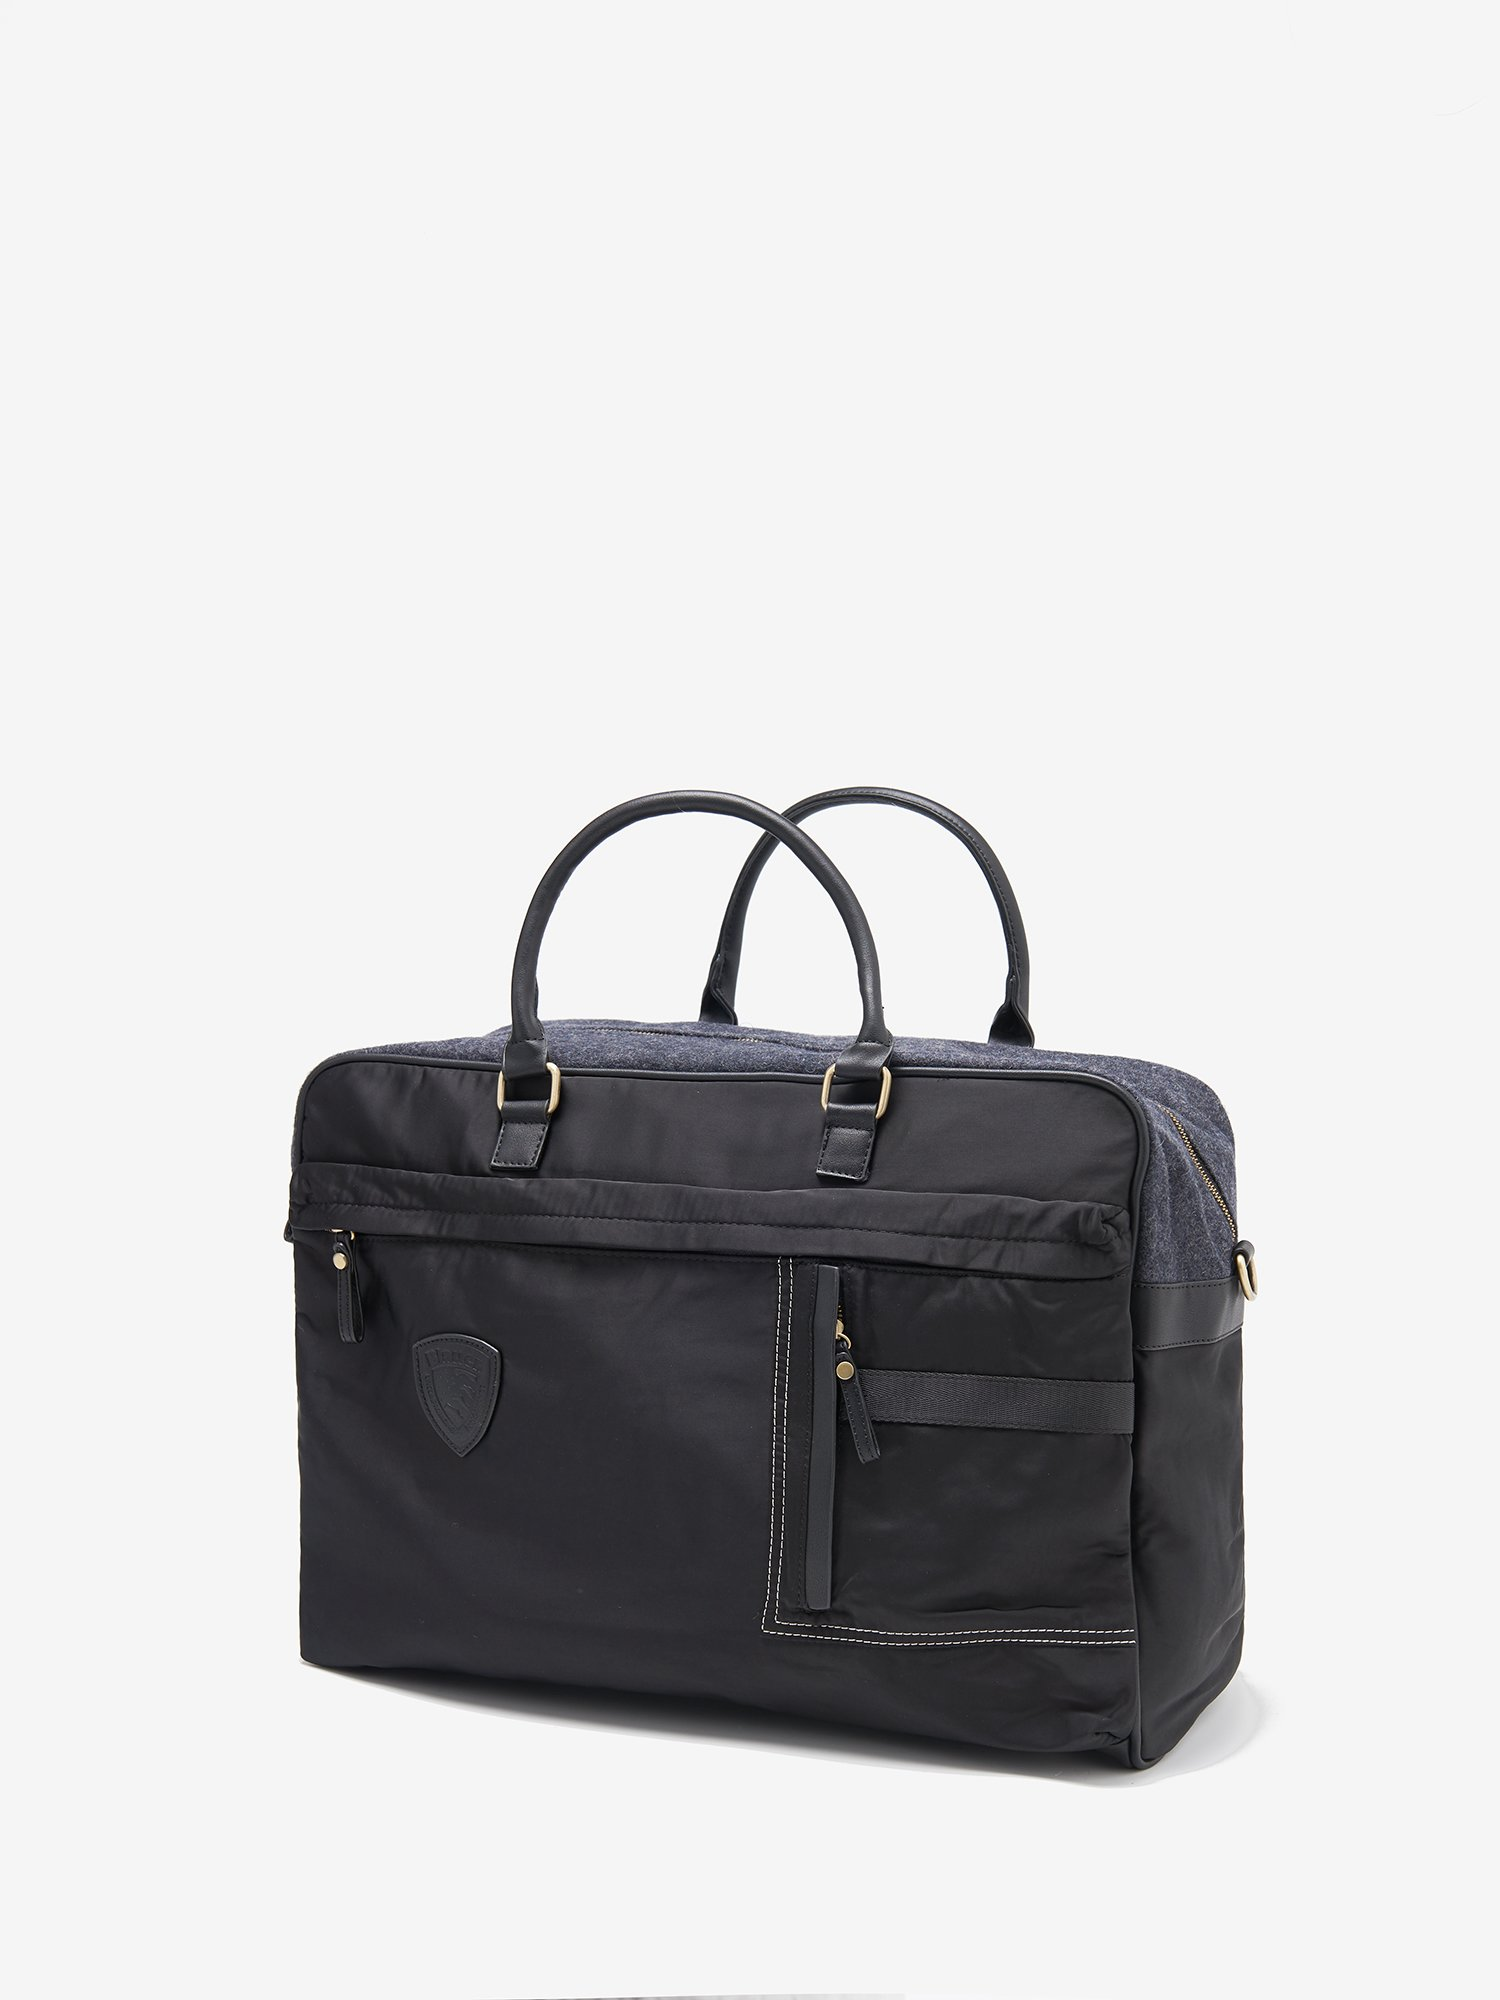 Blauer - XL BRIEFCASE WITH HANDLES AND SHOULDER STRAP - Black - Blauer